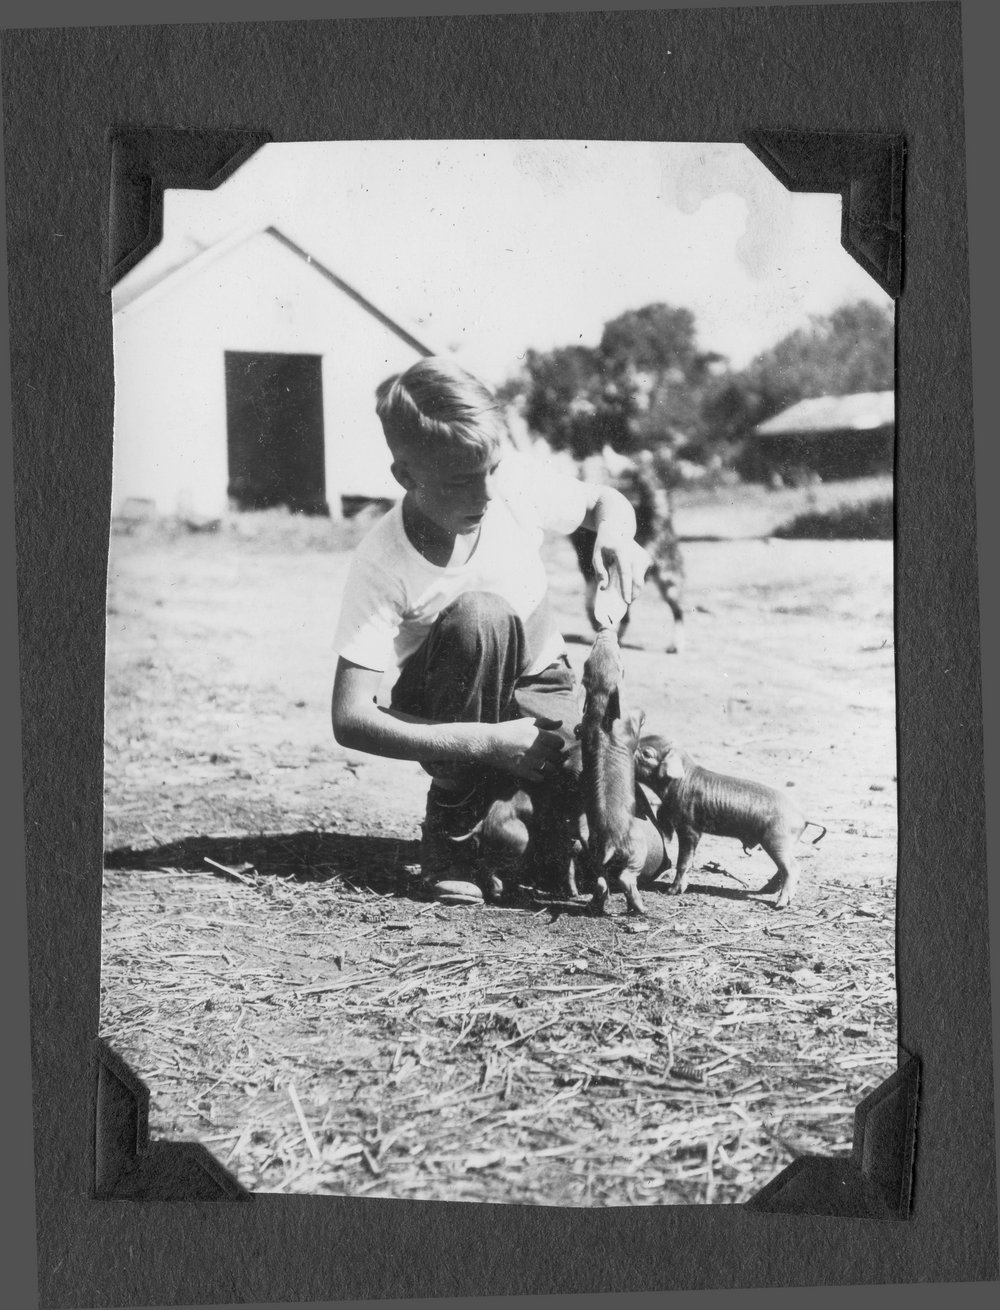 Melvin Brose photograph album - Melvin using a bottle to feed runt pigs raised by the Brose children.